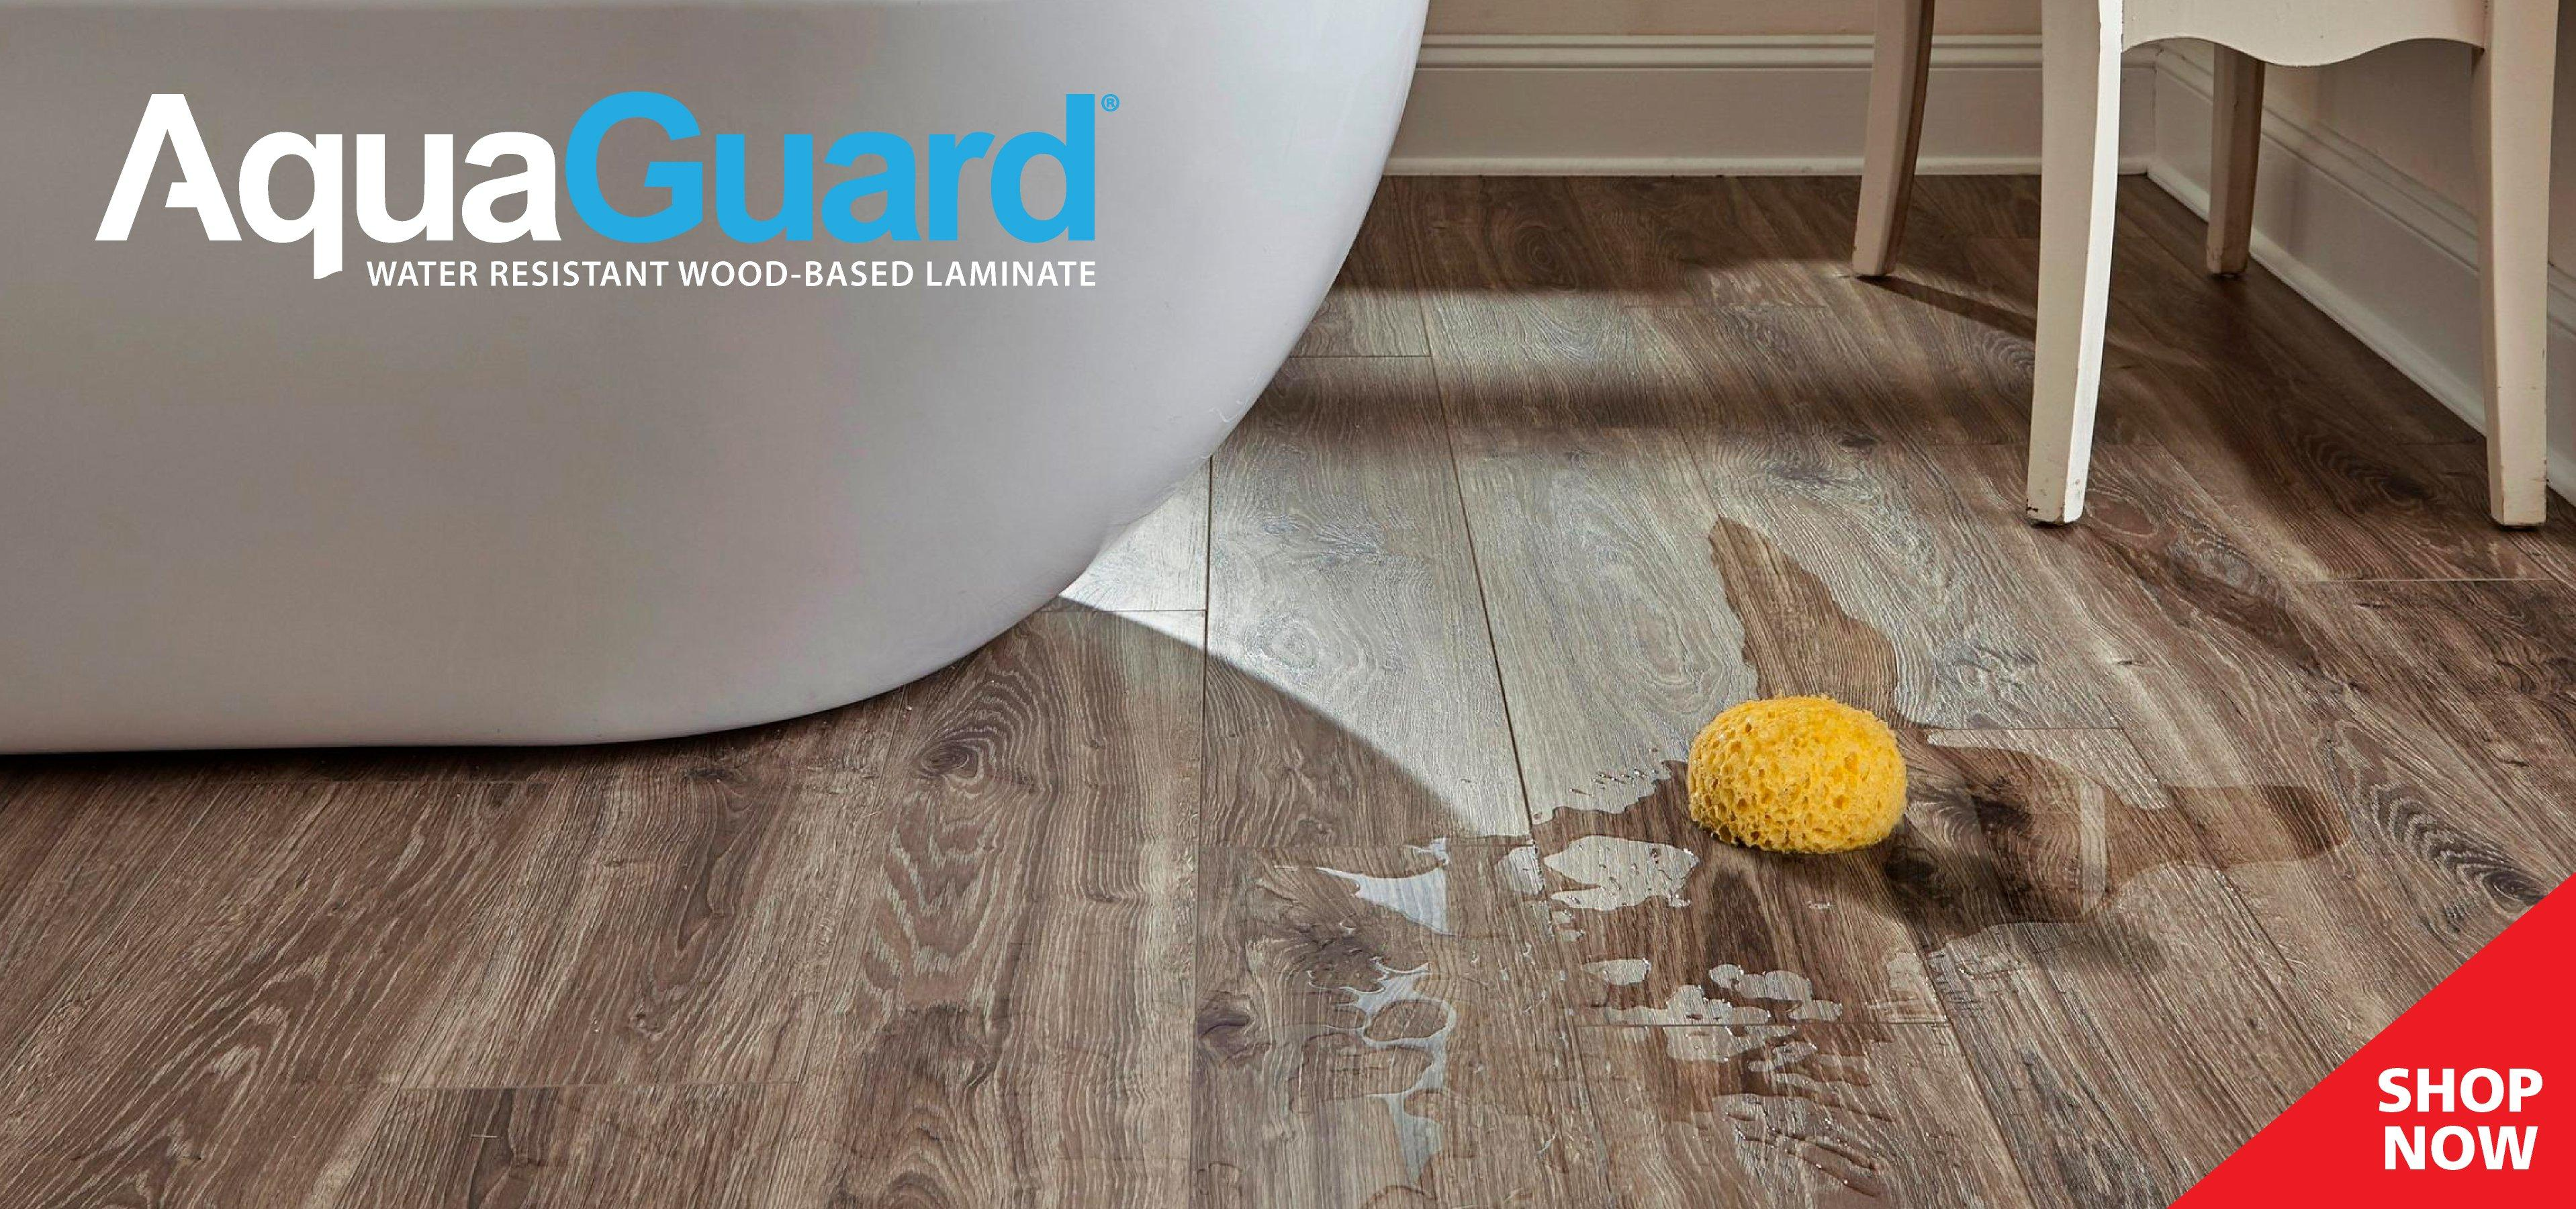 AQUAGUARD WATER RESISTANT LAMINATE. NEW And Exclusive To Floor ...